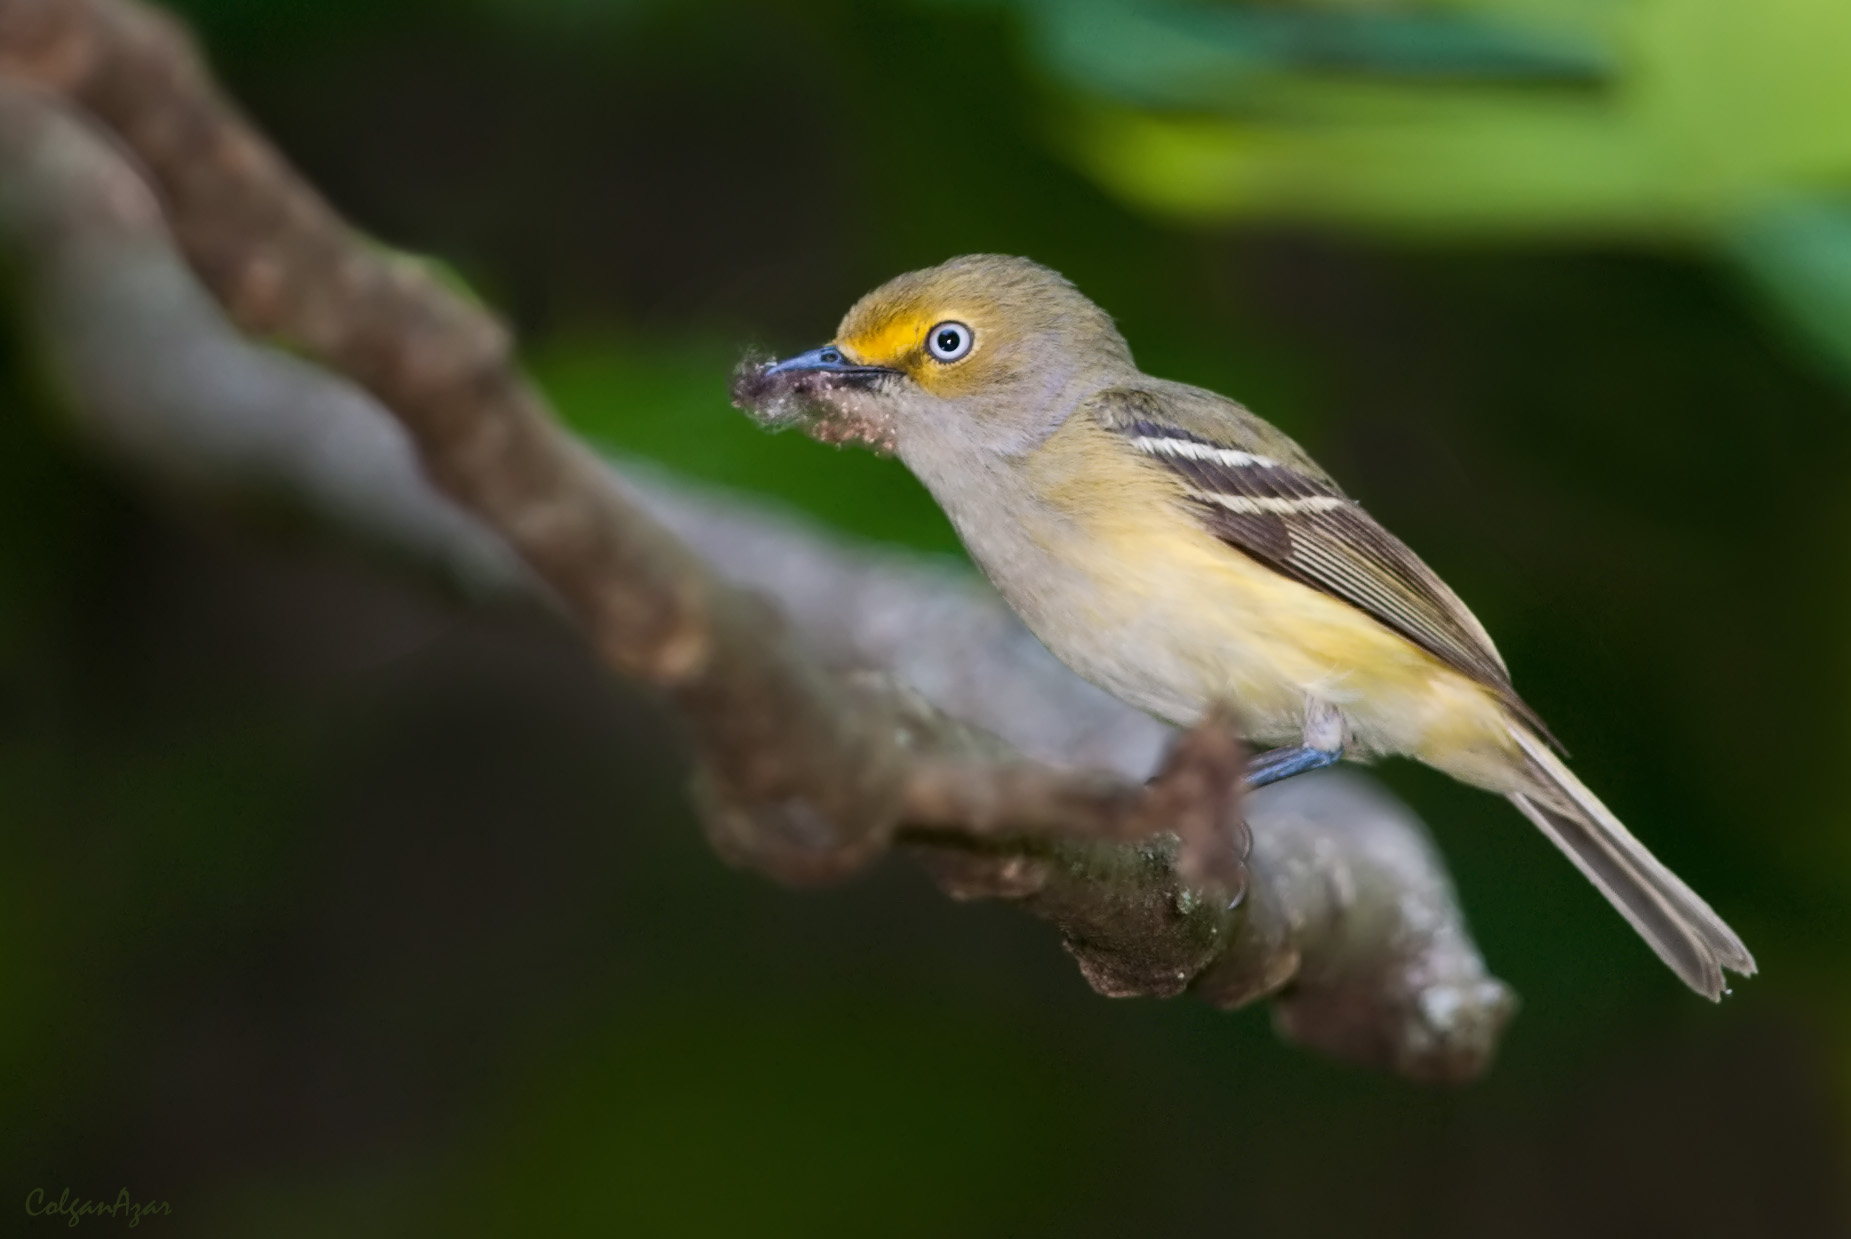 """- White-eyed Vireo (Vireo griseus)White-eyed Vireos live in dense undergrowth such as shrubs and scrub. Their diet consists of insects and berries. They weigh 0.4-0.5 oz. and have an average wingspan of 6.7 in. White-eyed Vireos have multiple calls that sound like """"chip-a-weeoo-chip"""" and """"Quick, give me a rain check."""" They are protected on the US Migratory Bird list.Photo Credits: Kelly Colgan Azar"""